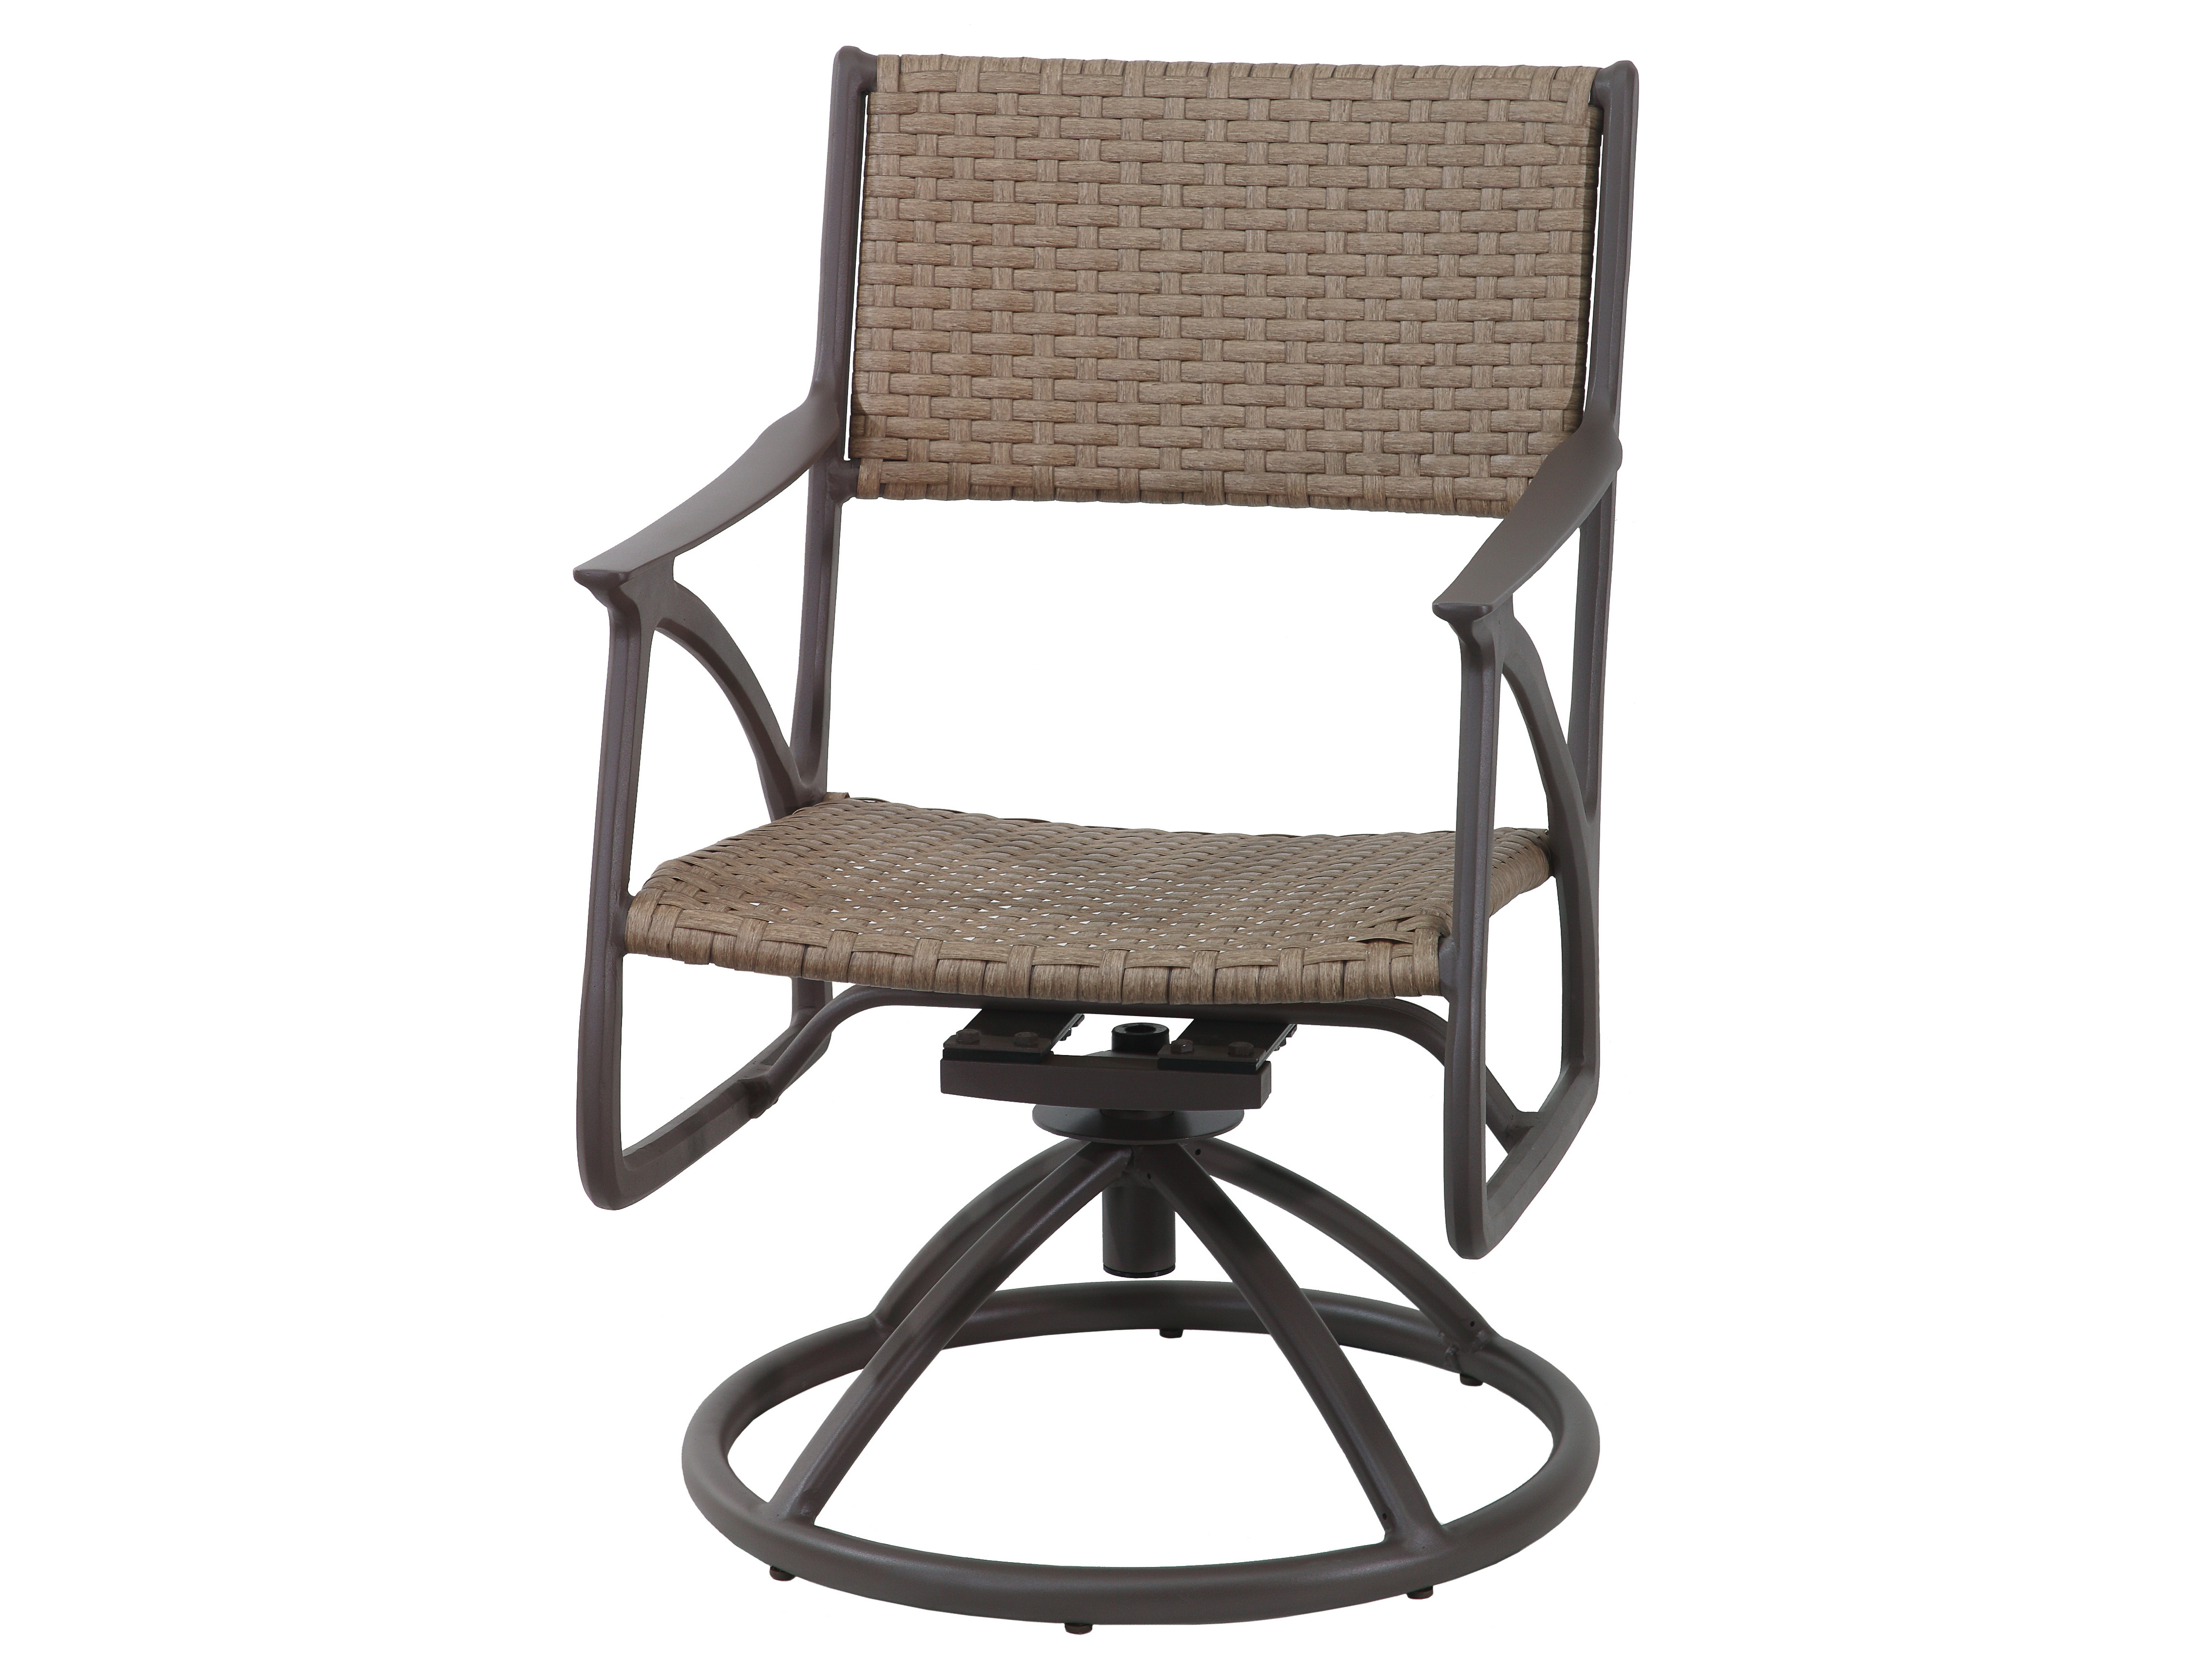 Gensun Amari Woven Aluminum Wicker Swivel Rocker | Ges70250011 Inside Amari Swivel Accent Chairs (View 21 of 25)